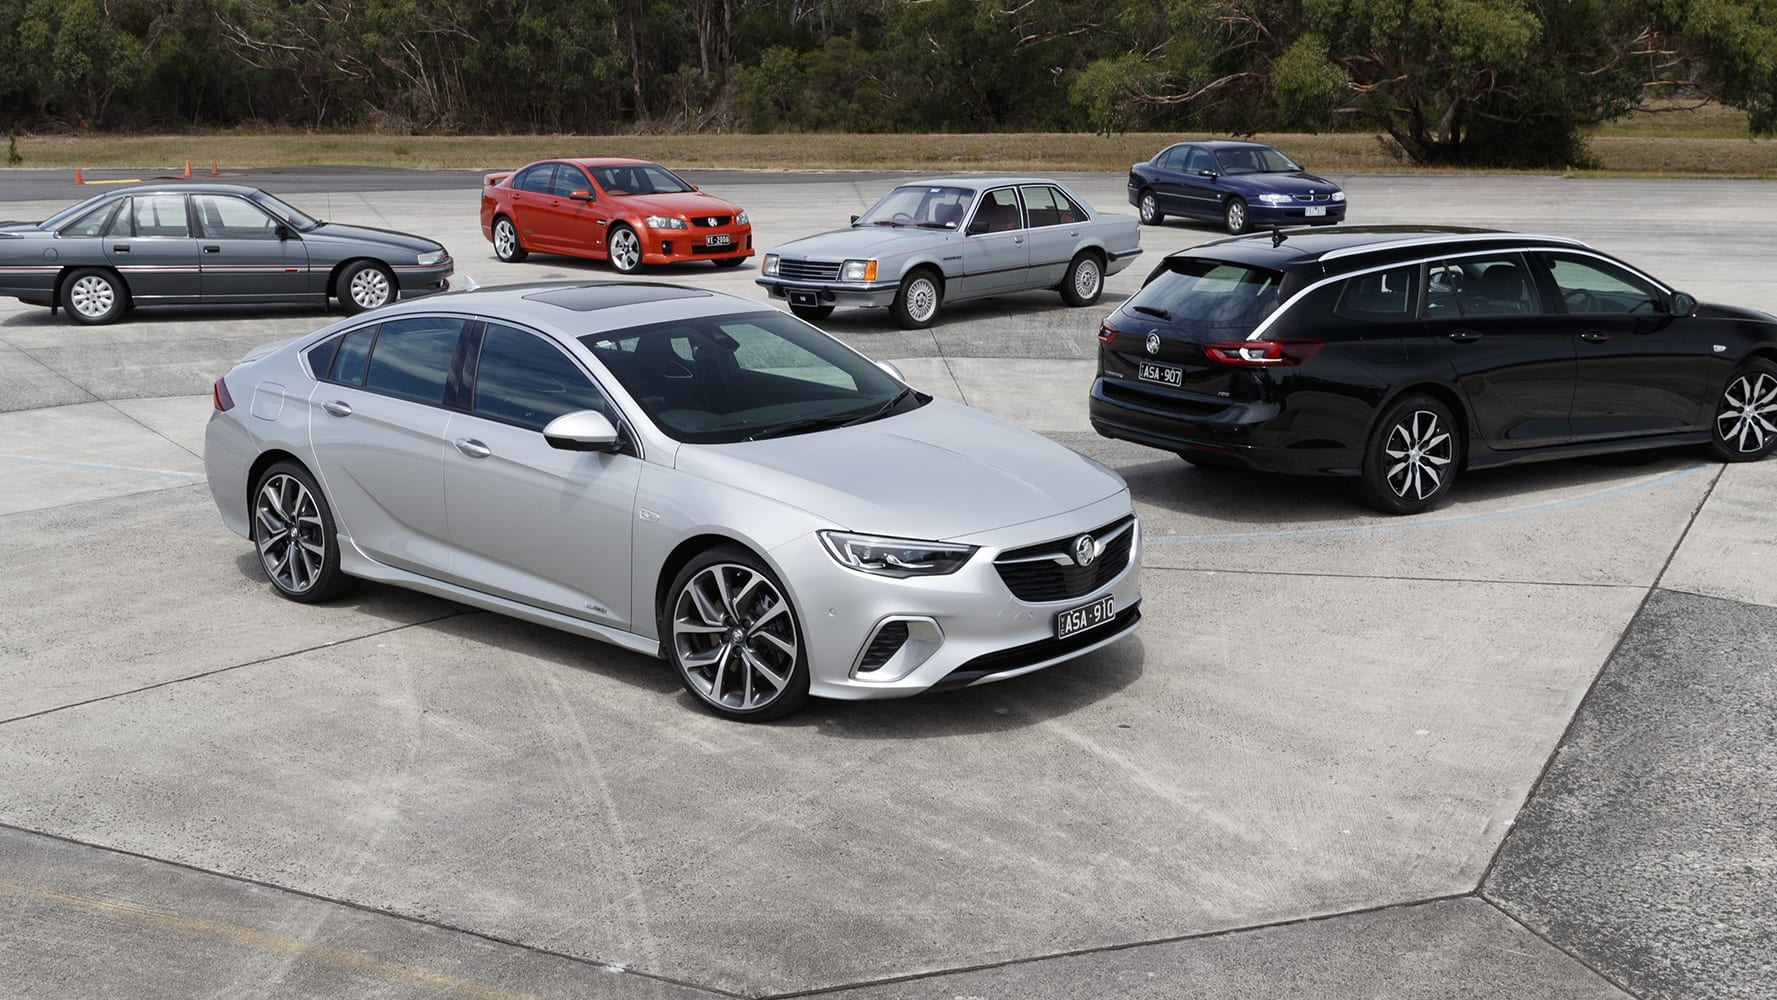 Why the Holden Commodore's days were numbered